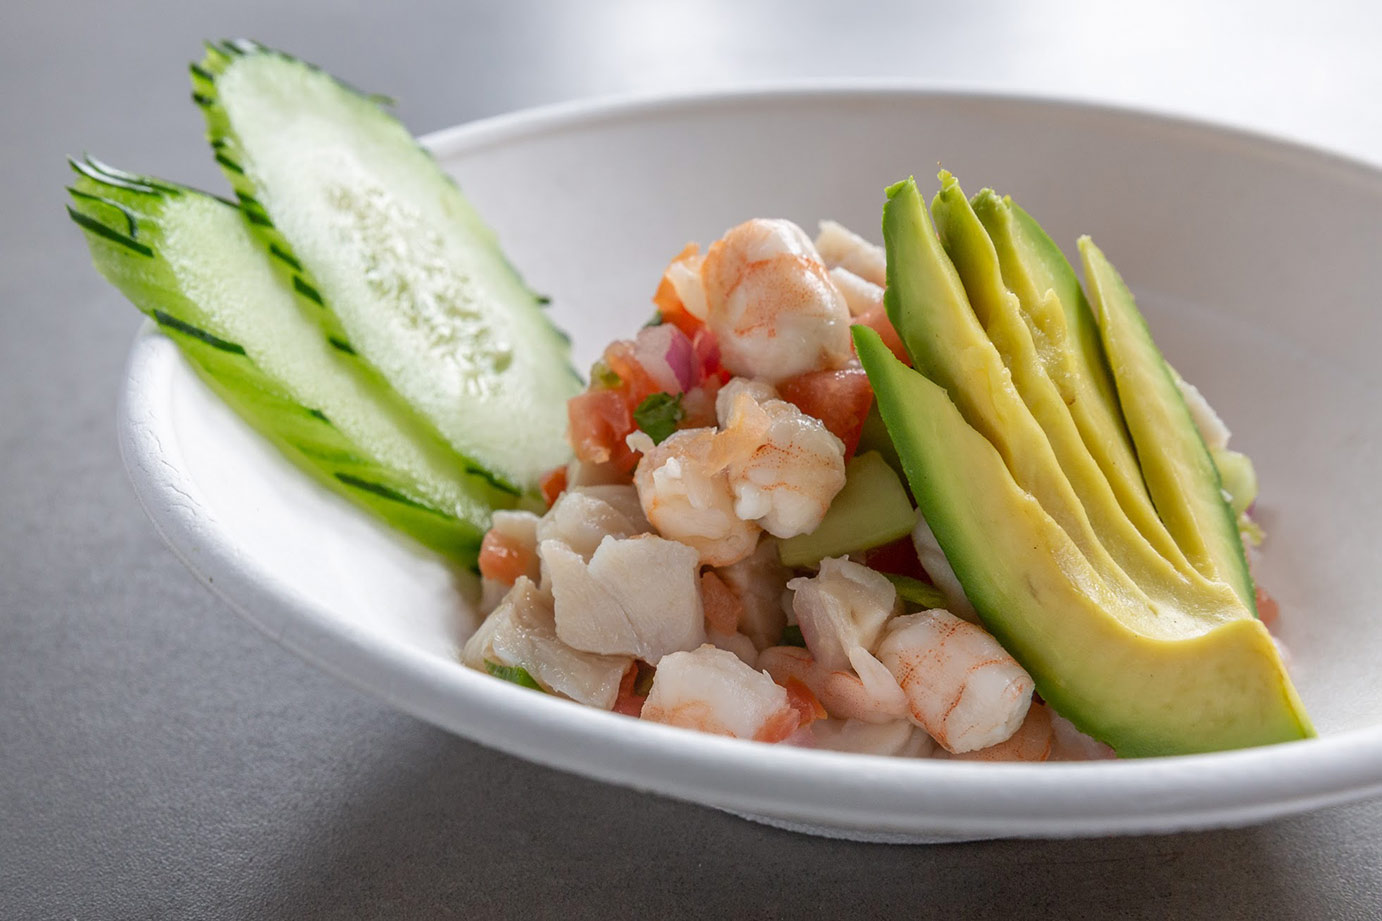 imags of avocado shrimp salad